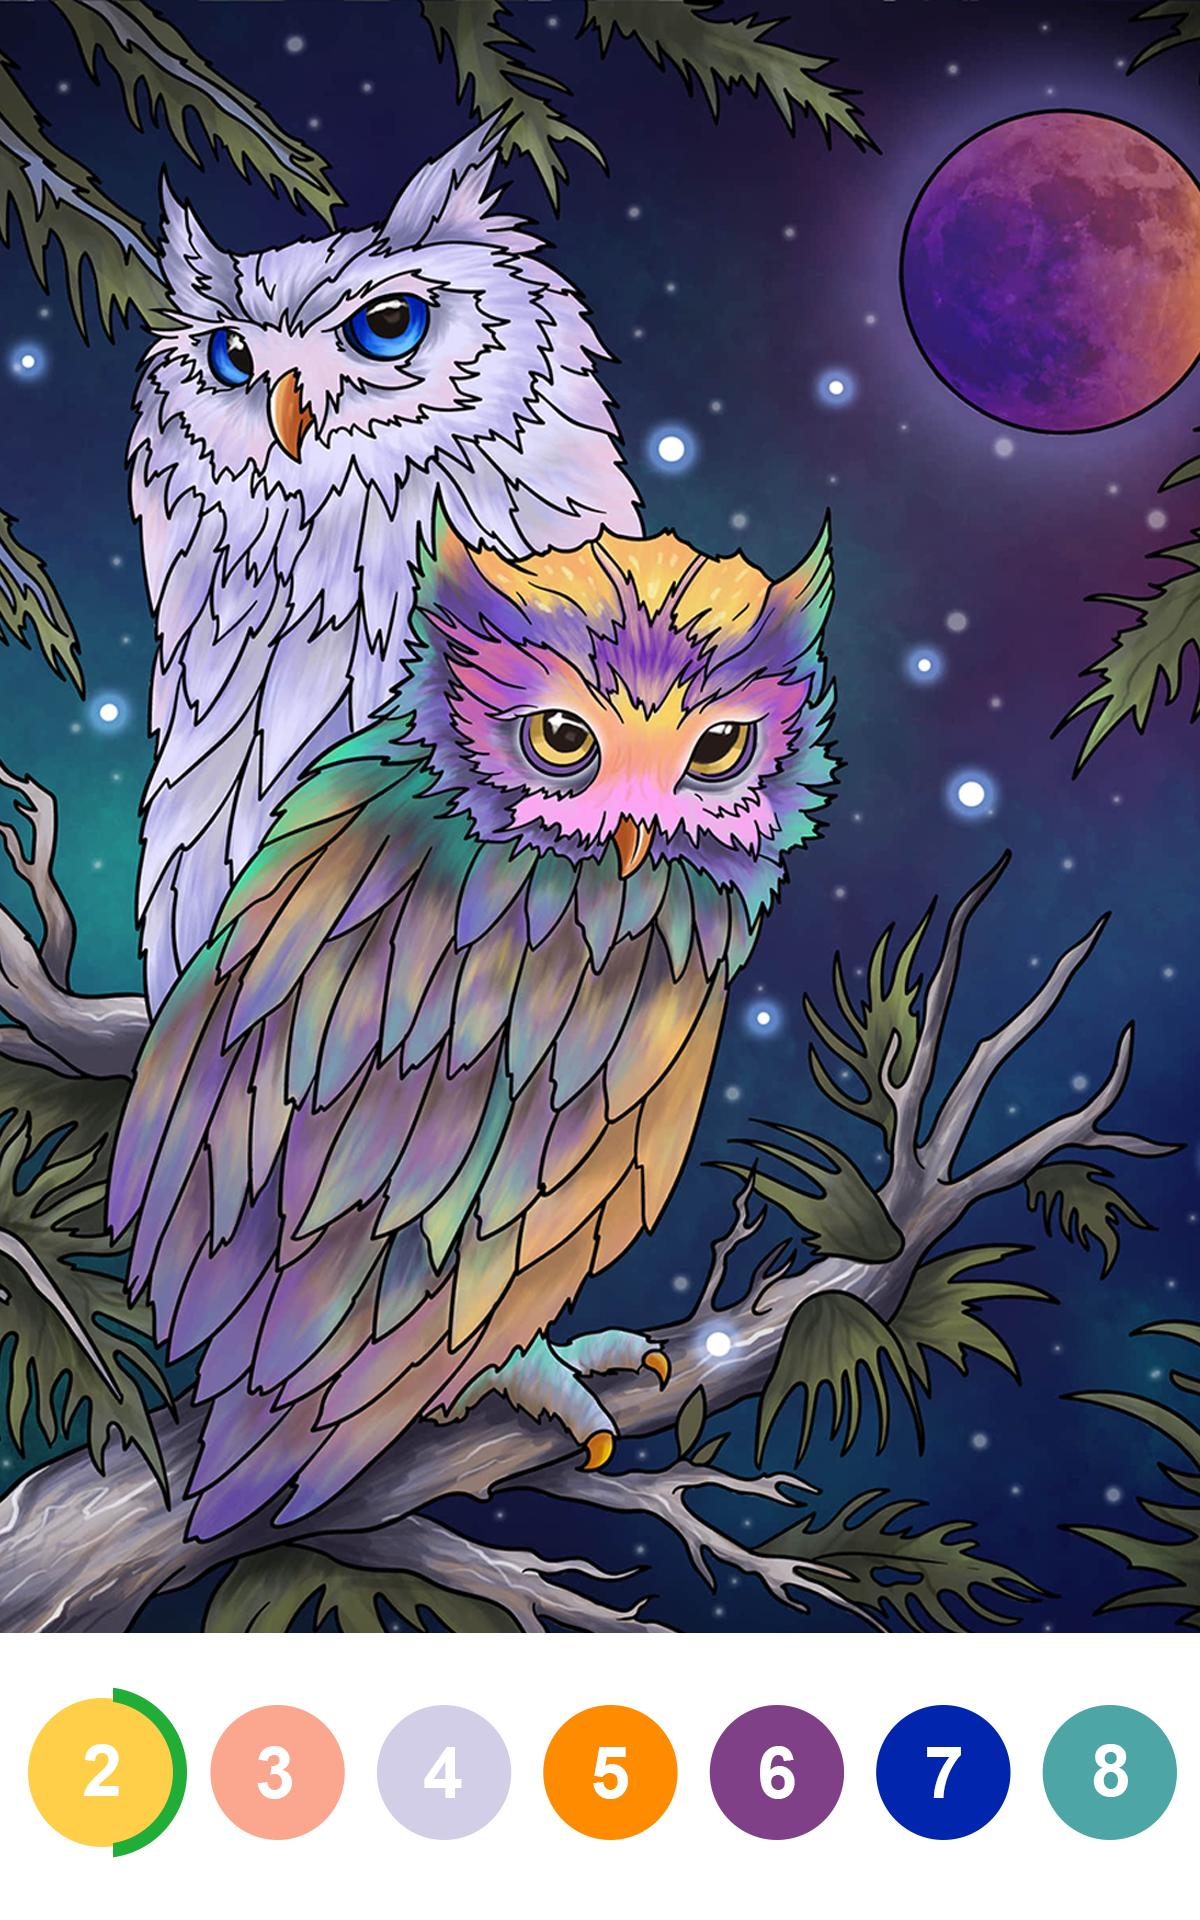 Paint By Number Free Coloring Book & Puzzle Game 2.36.2 Screenshot 14